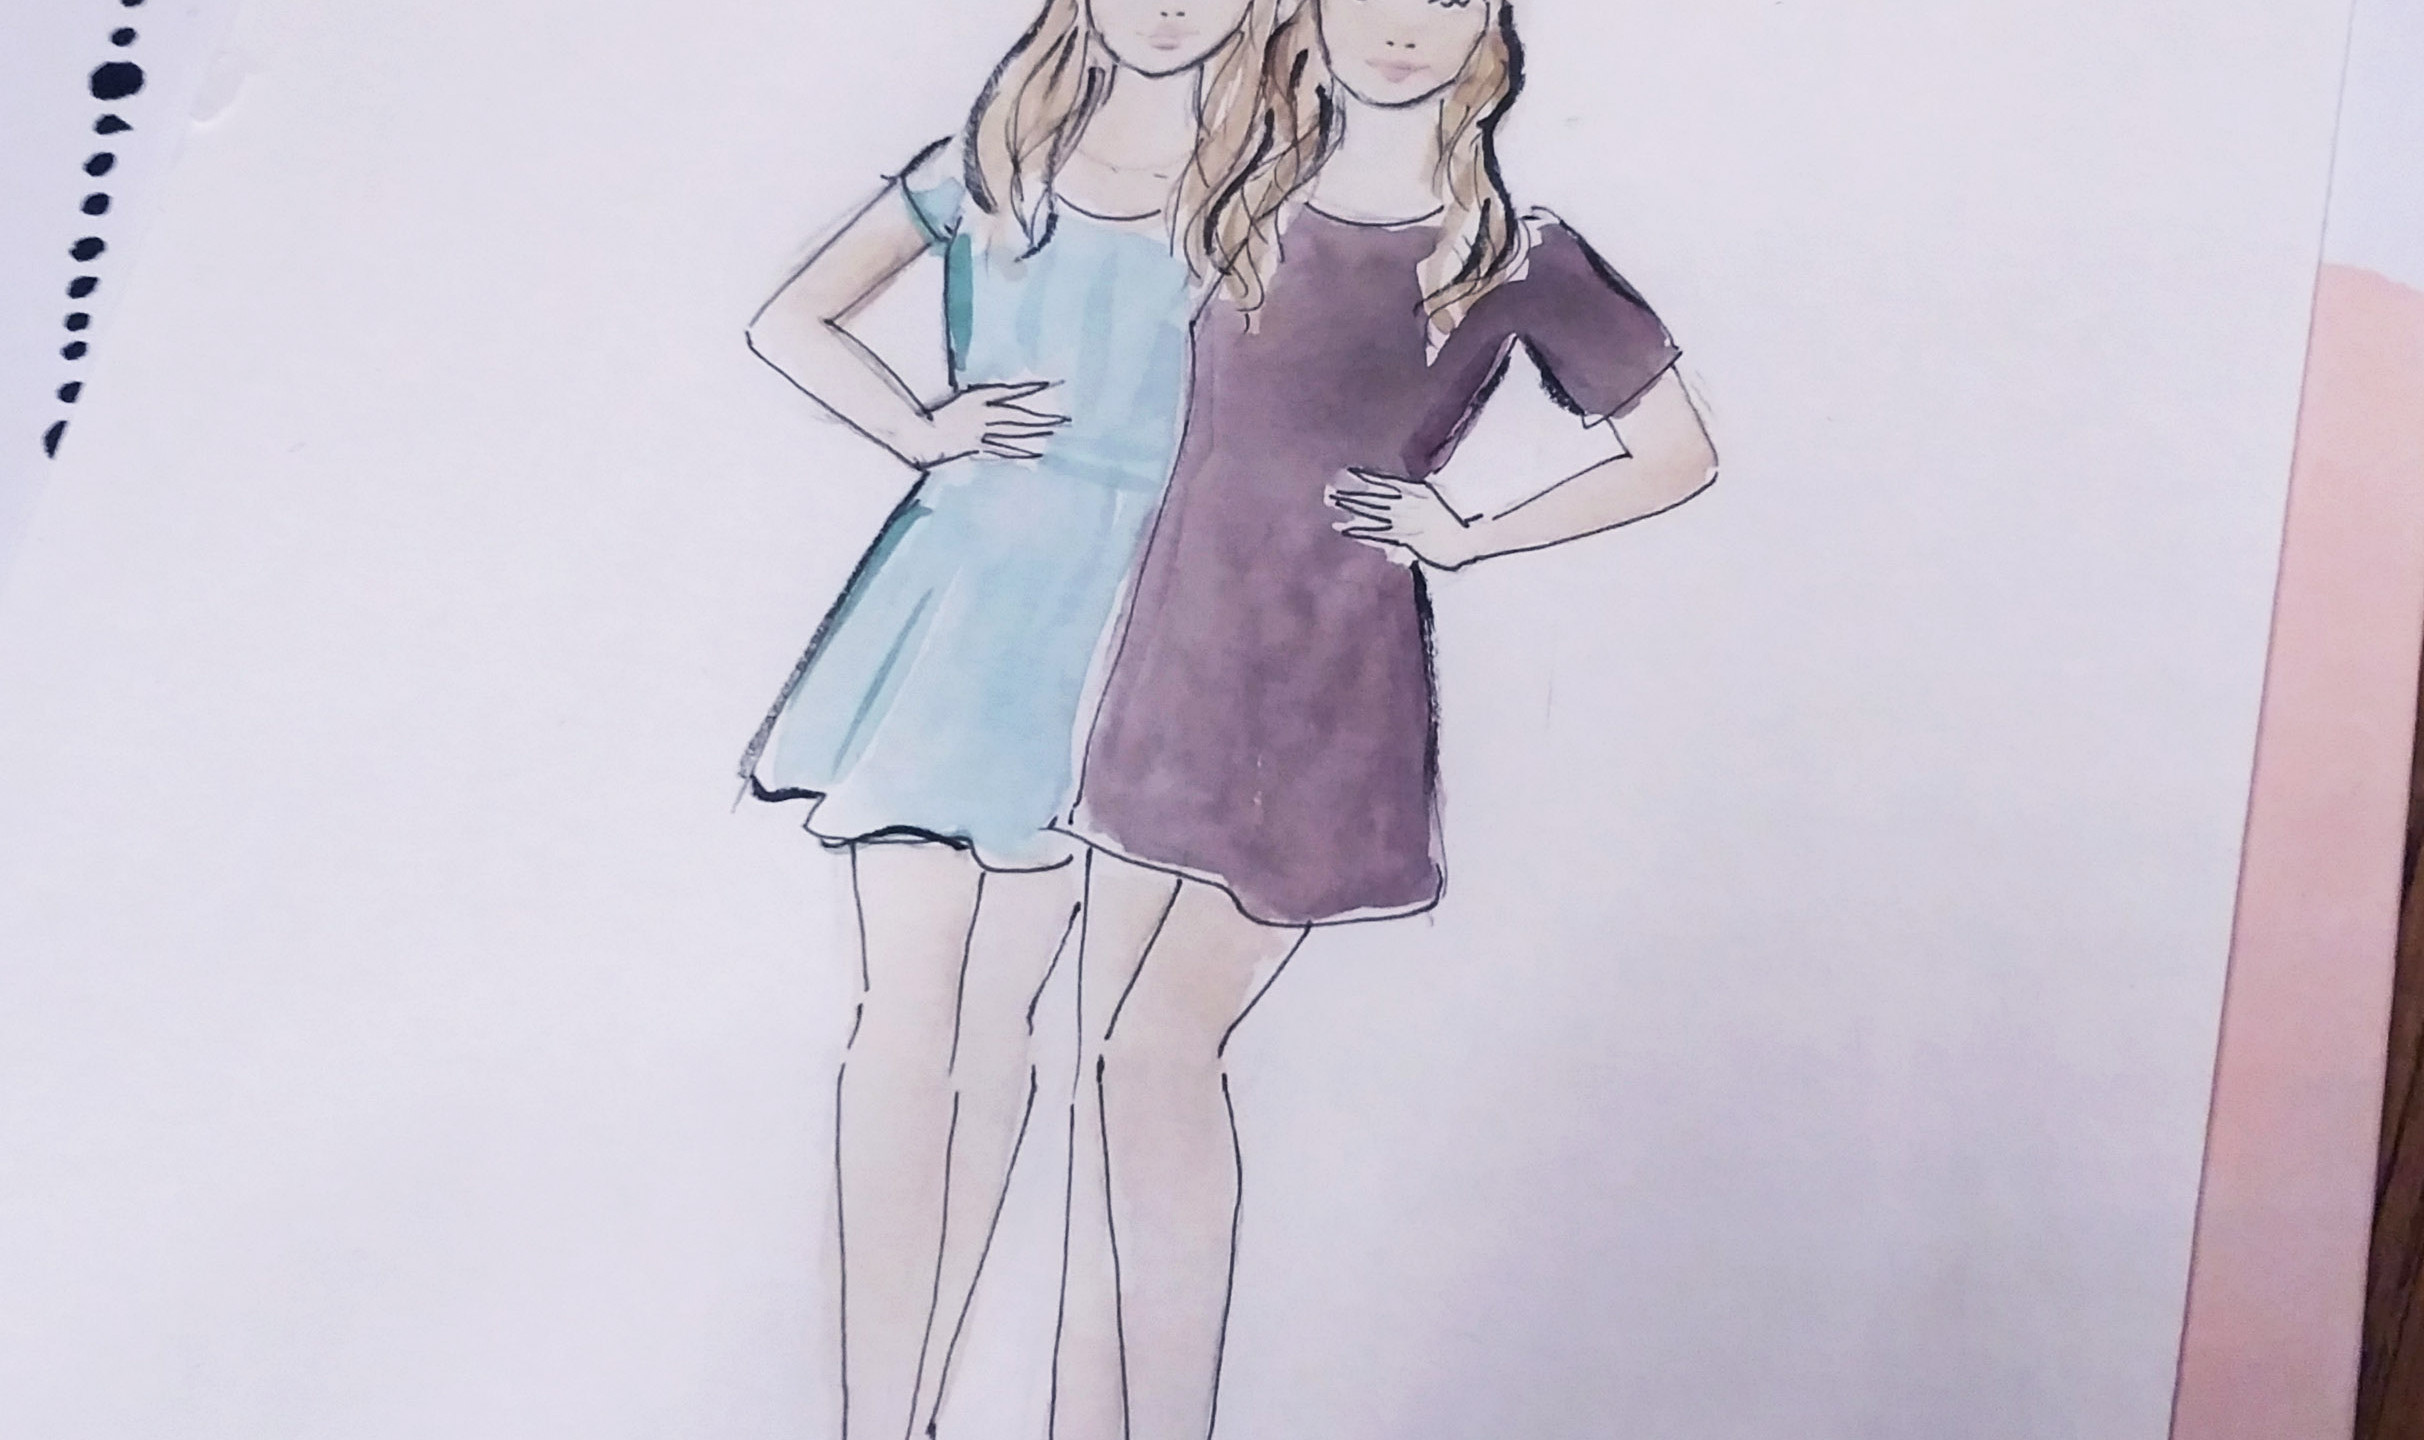 Live sketching at the Grazia event